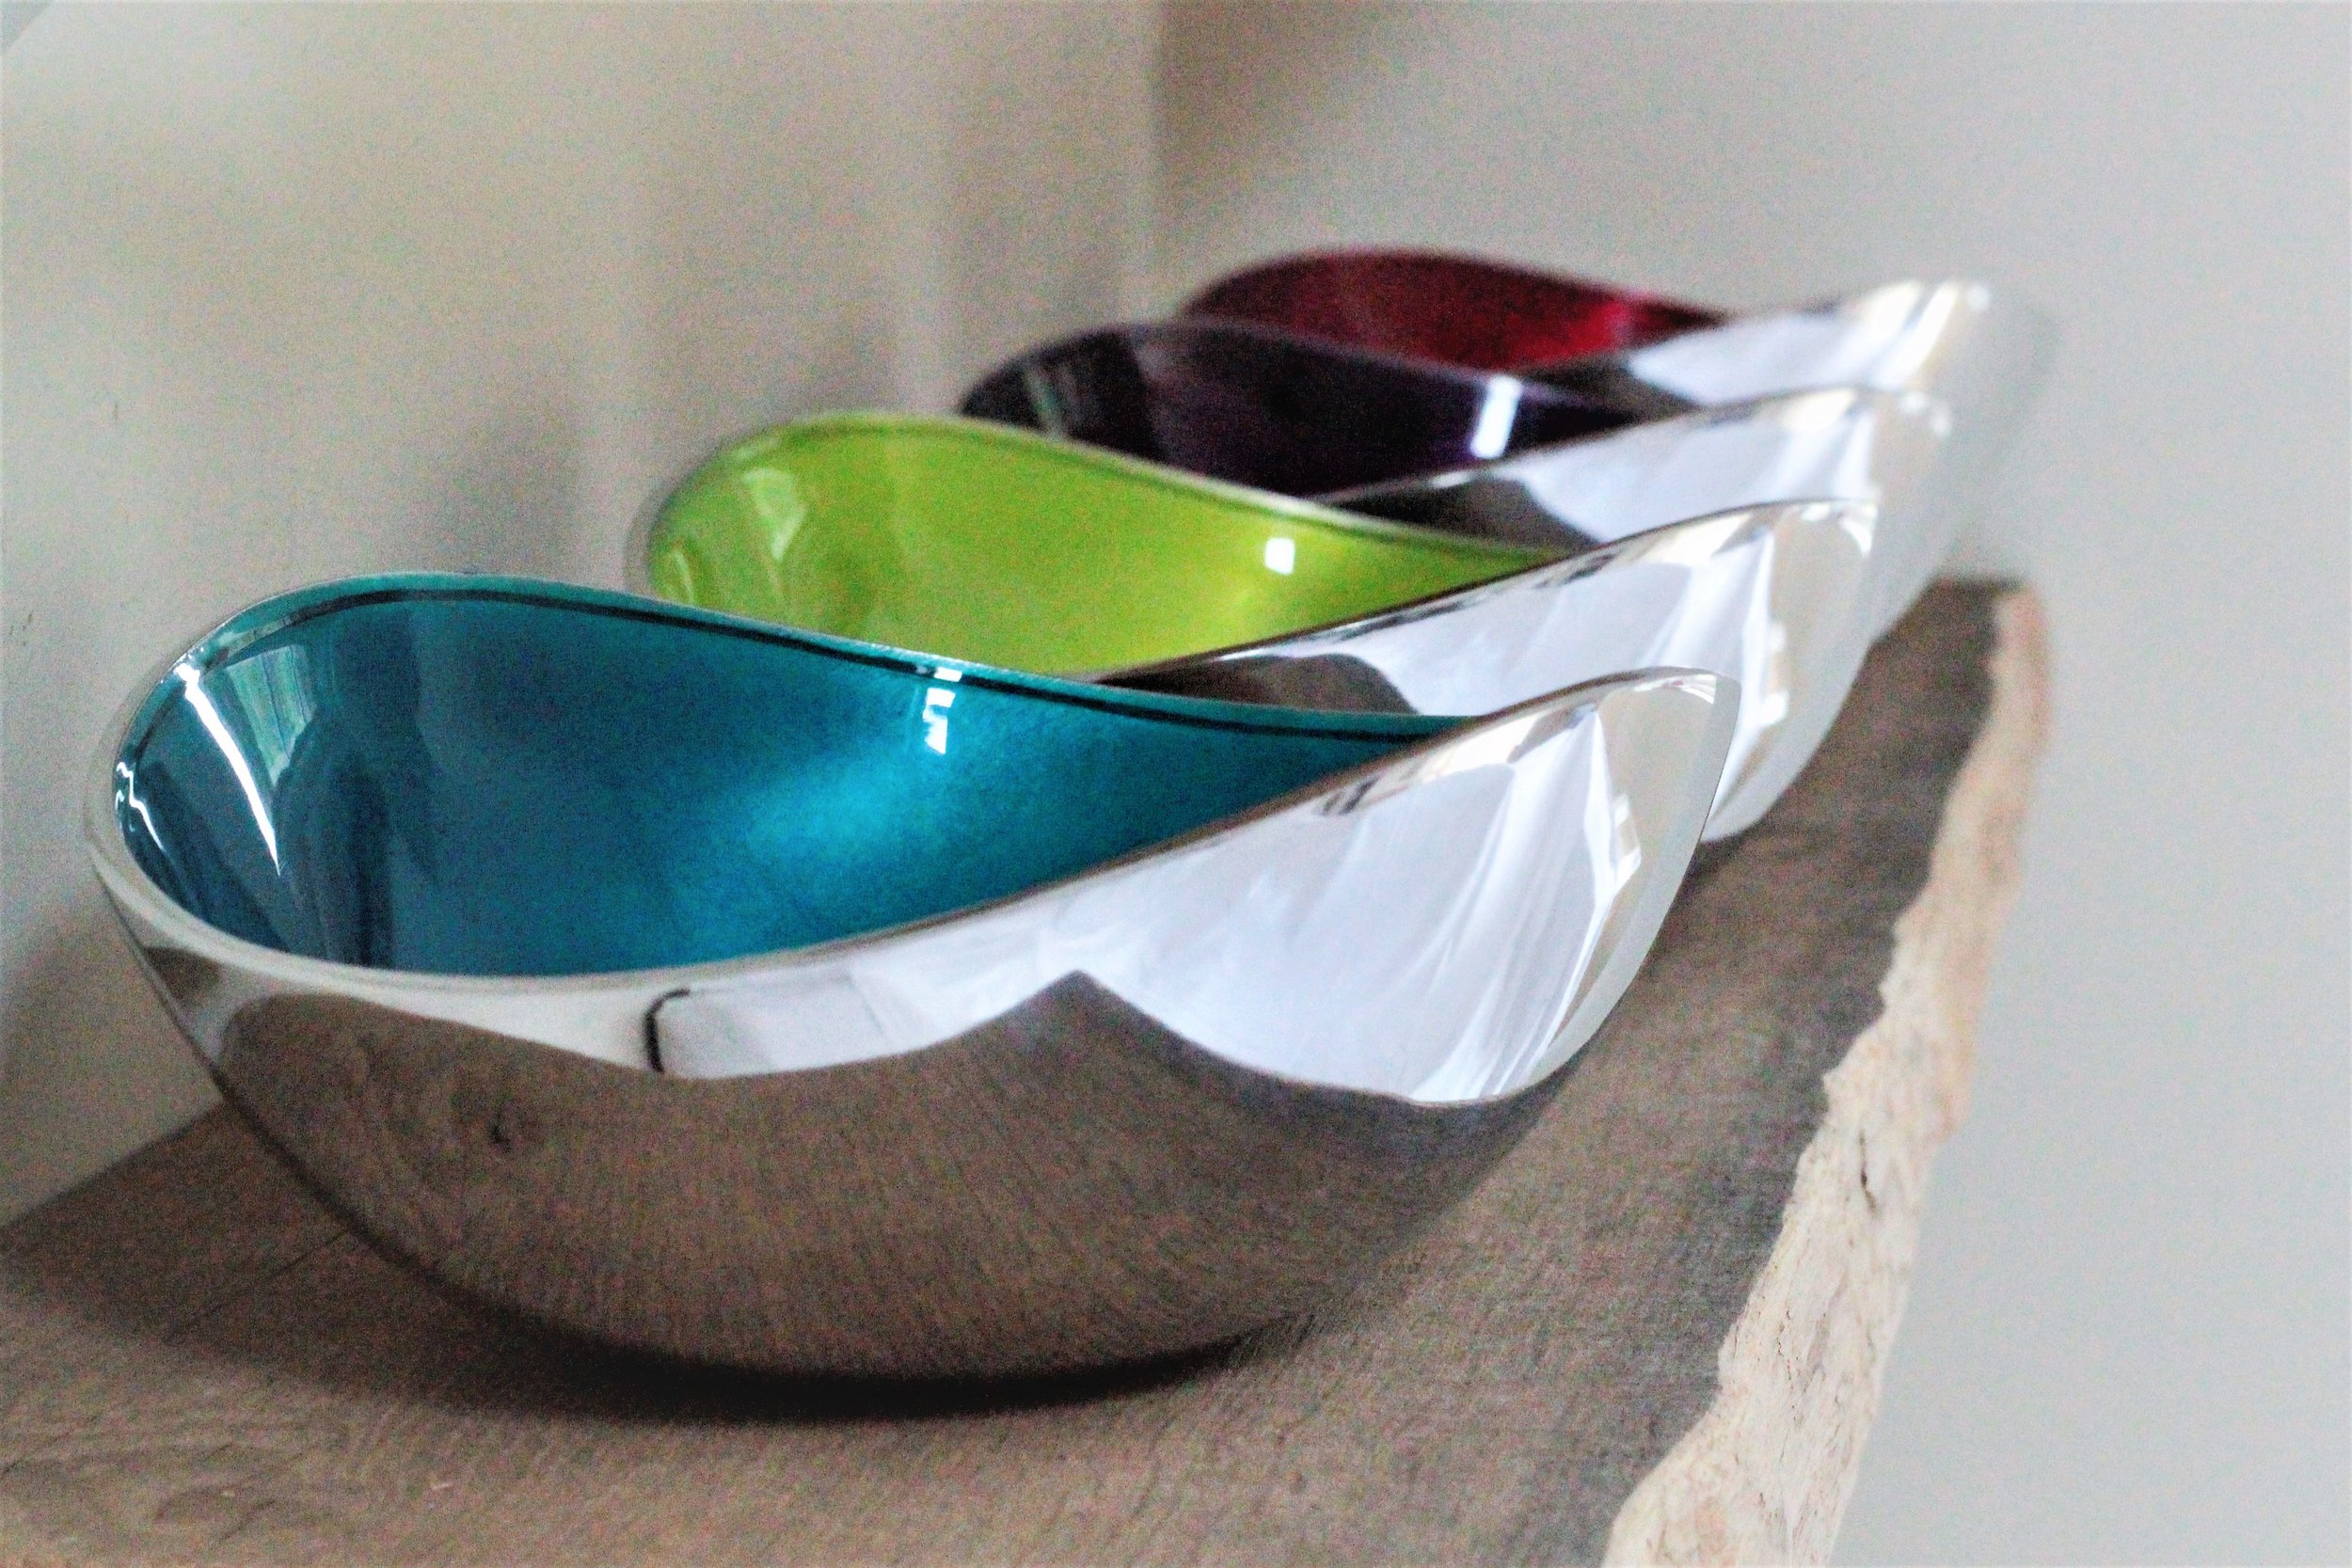 Handmade pots & bowls - A range of handmade beautifully finished bowls, platters and dishes. Our collection features wildlife artwork and vibrant colours. Made from recycled aluminium or bamboo by artisans from around the world.